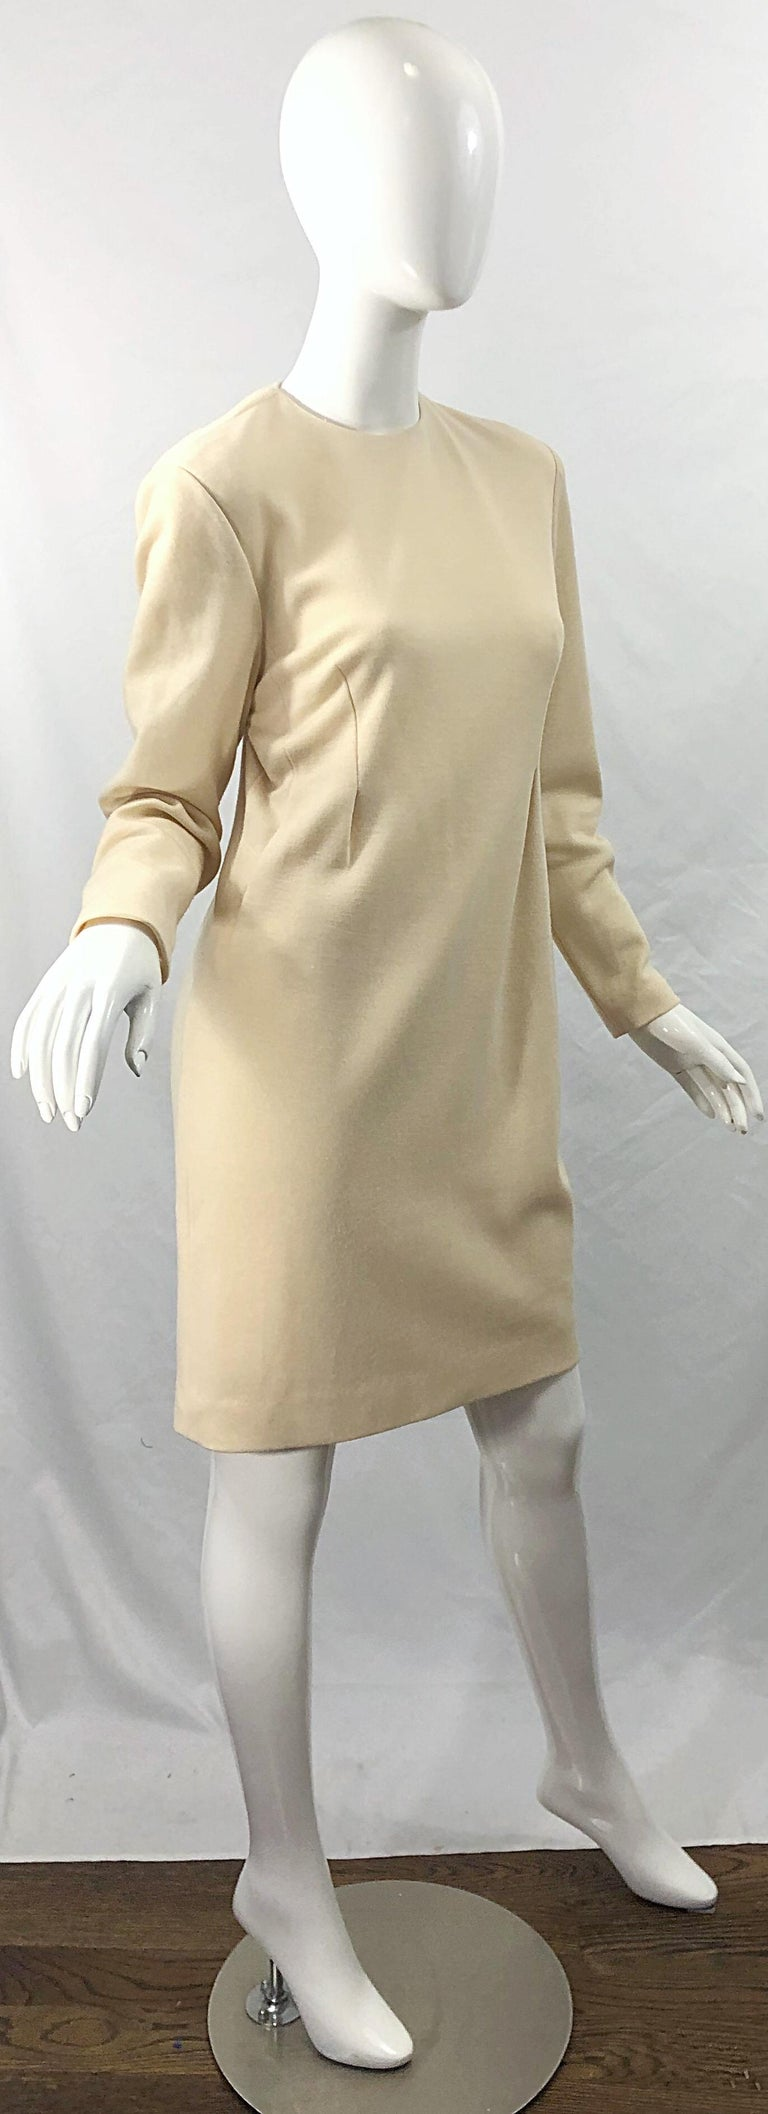 Vintage Geoffrey Beene for Bergdorf Goodman Size 10 Ivory Off White Wool Dress For Sale 7